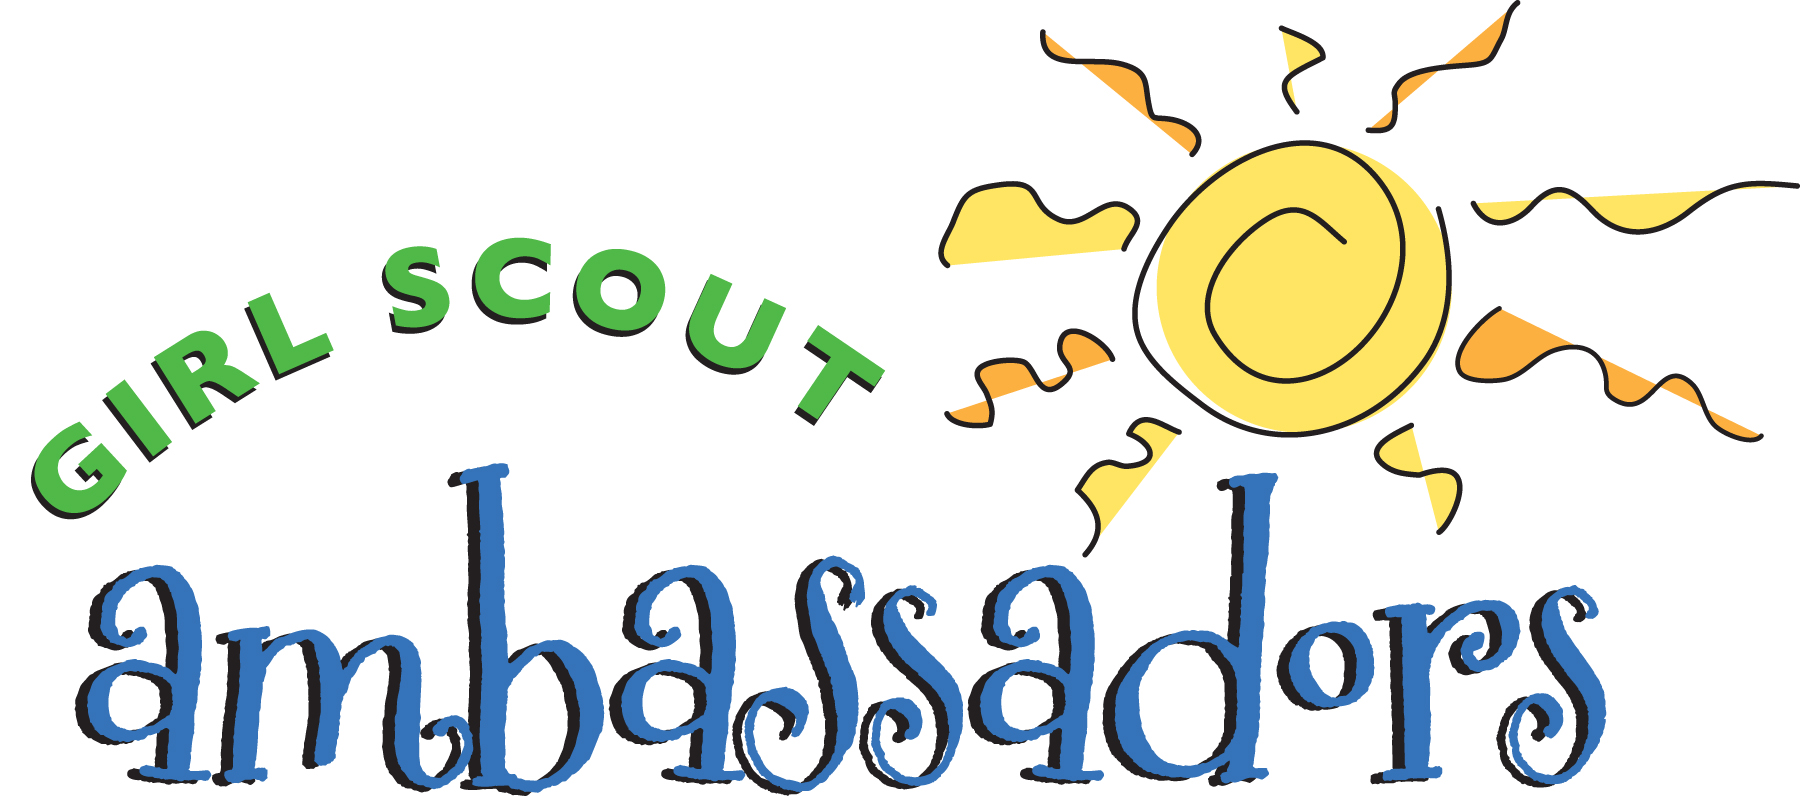 1800x796 Girl Scout Calling All Scouts Images On Brownie Girl Clip Art